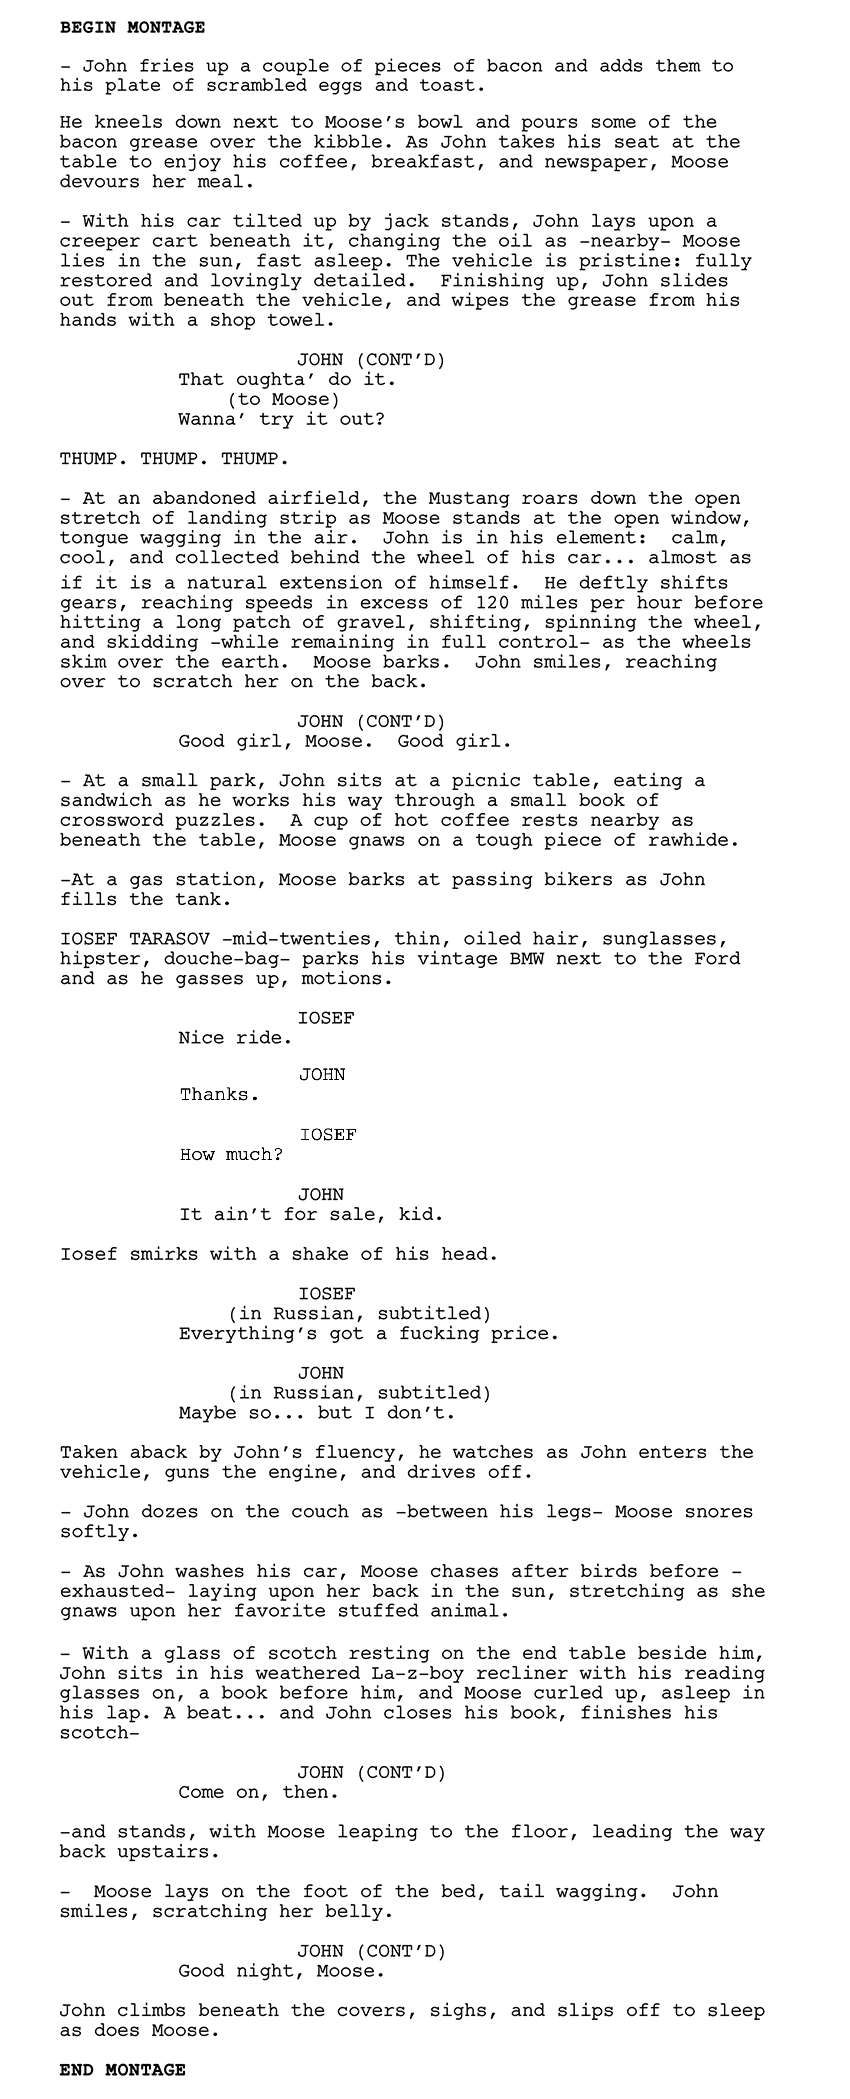 how to write a montage in a script